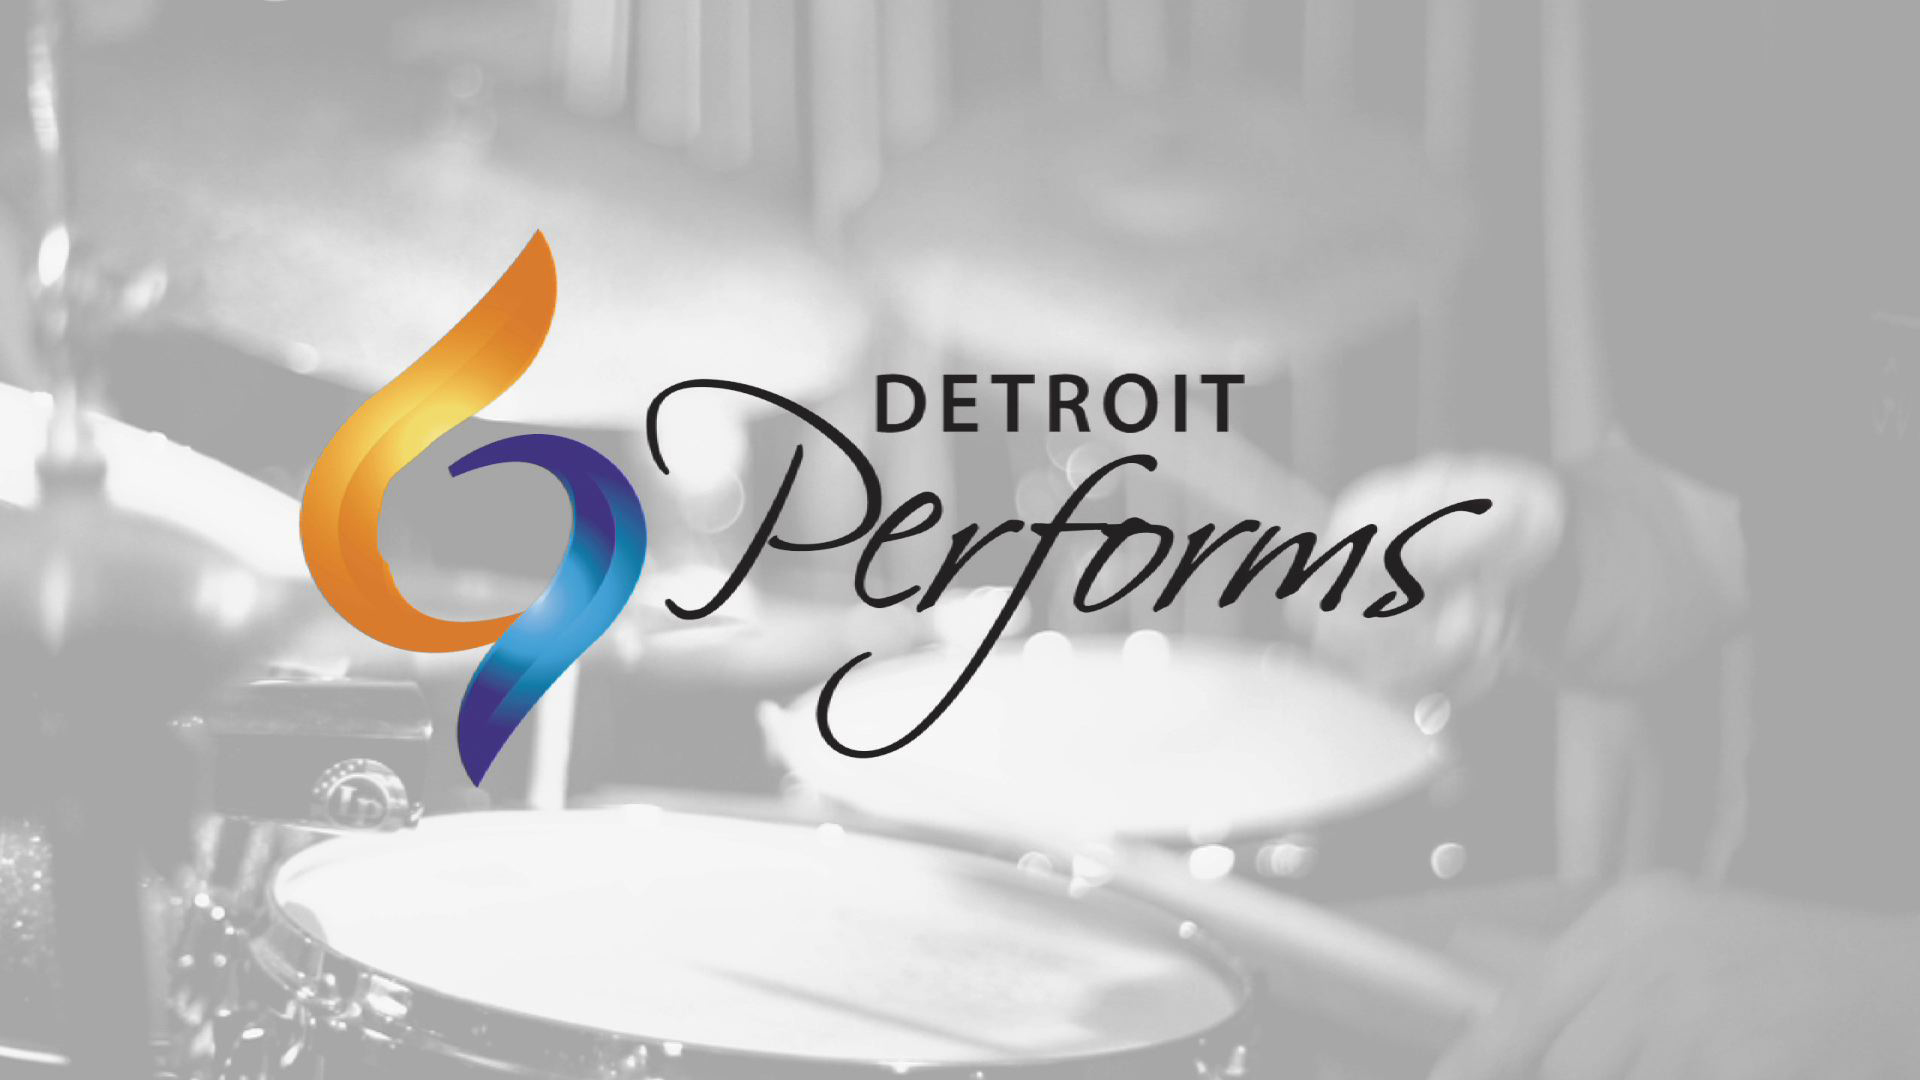 Detroit Performs | WTVS